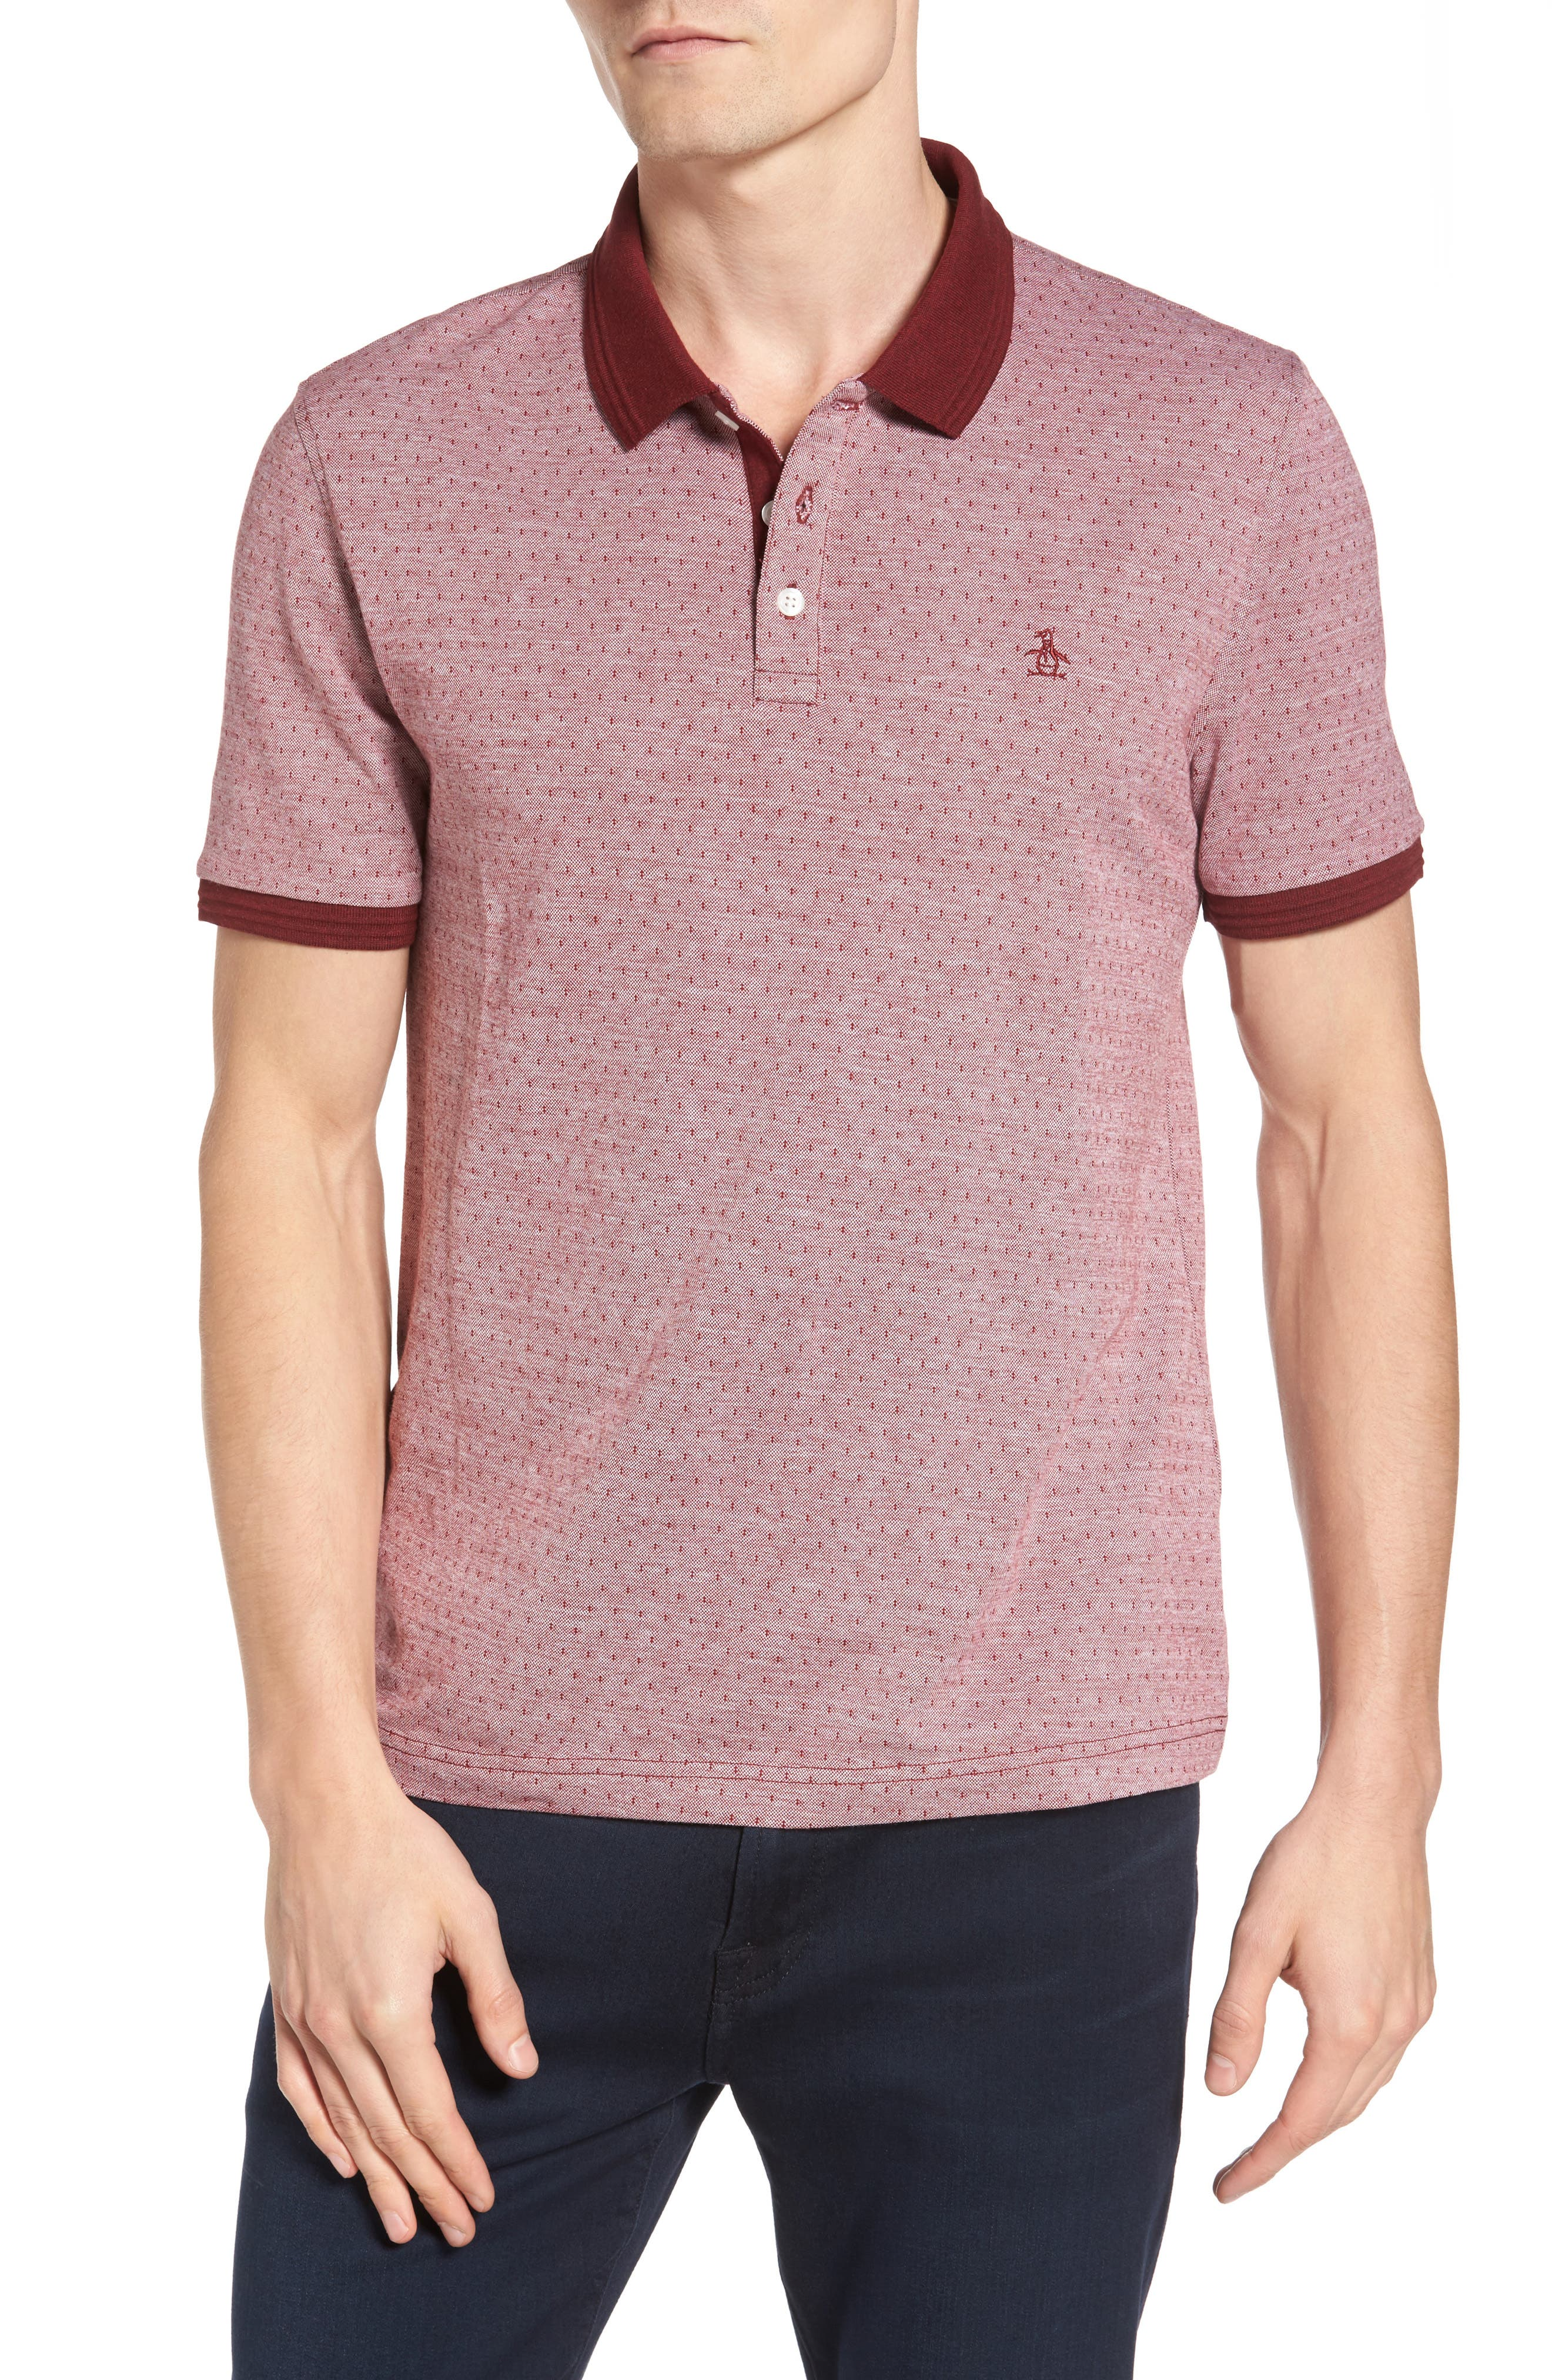 Original Penguin Bird's Eye Dobby Polo